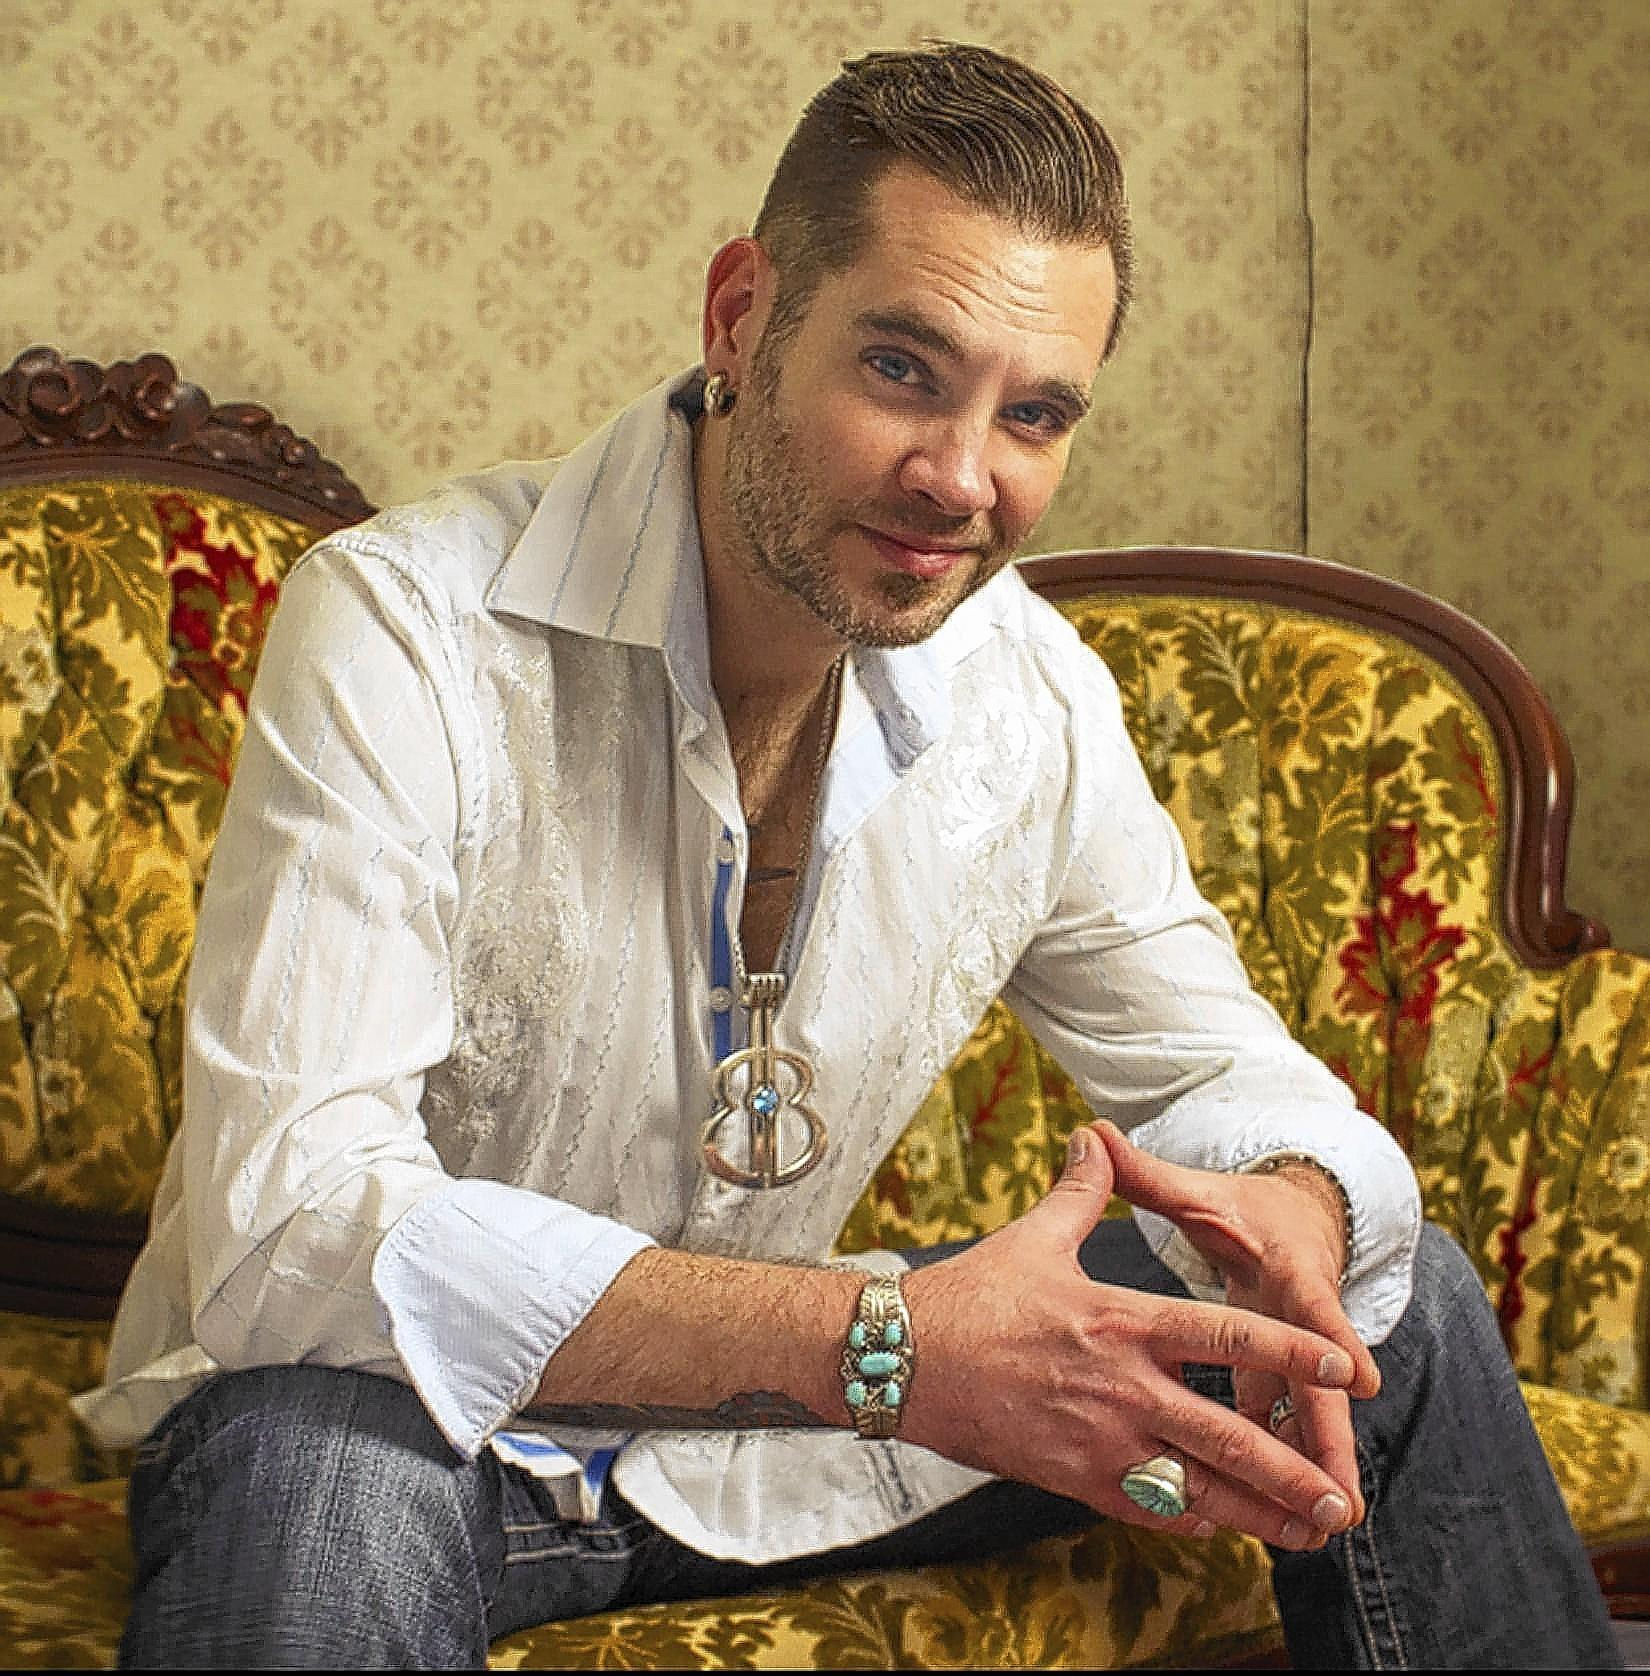 Bo Bice is the lead singer of Blood Sweat & Tears, performing March 5 at Musikfest Cafe in Bethlehem.